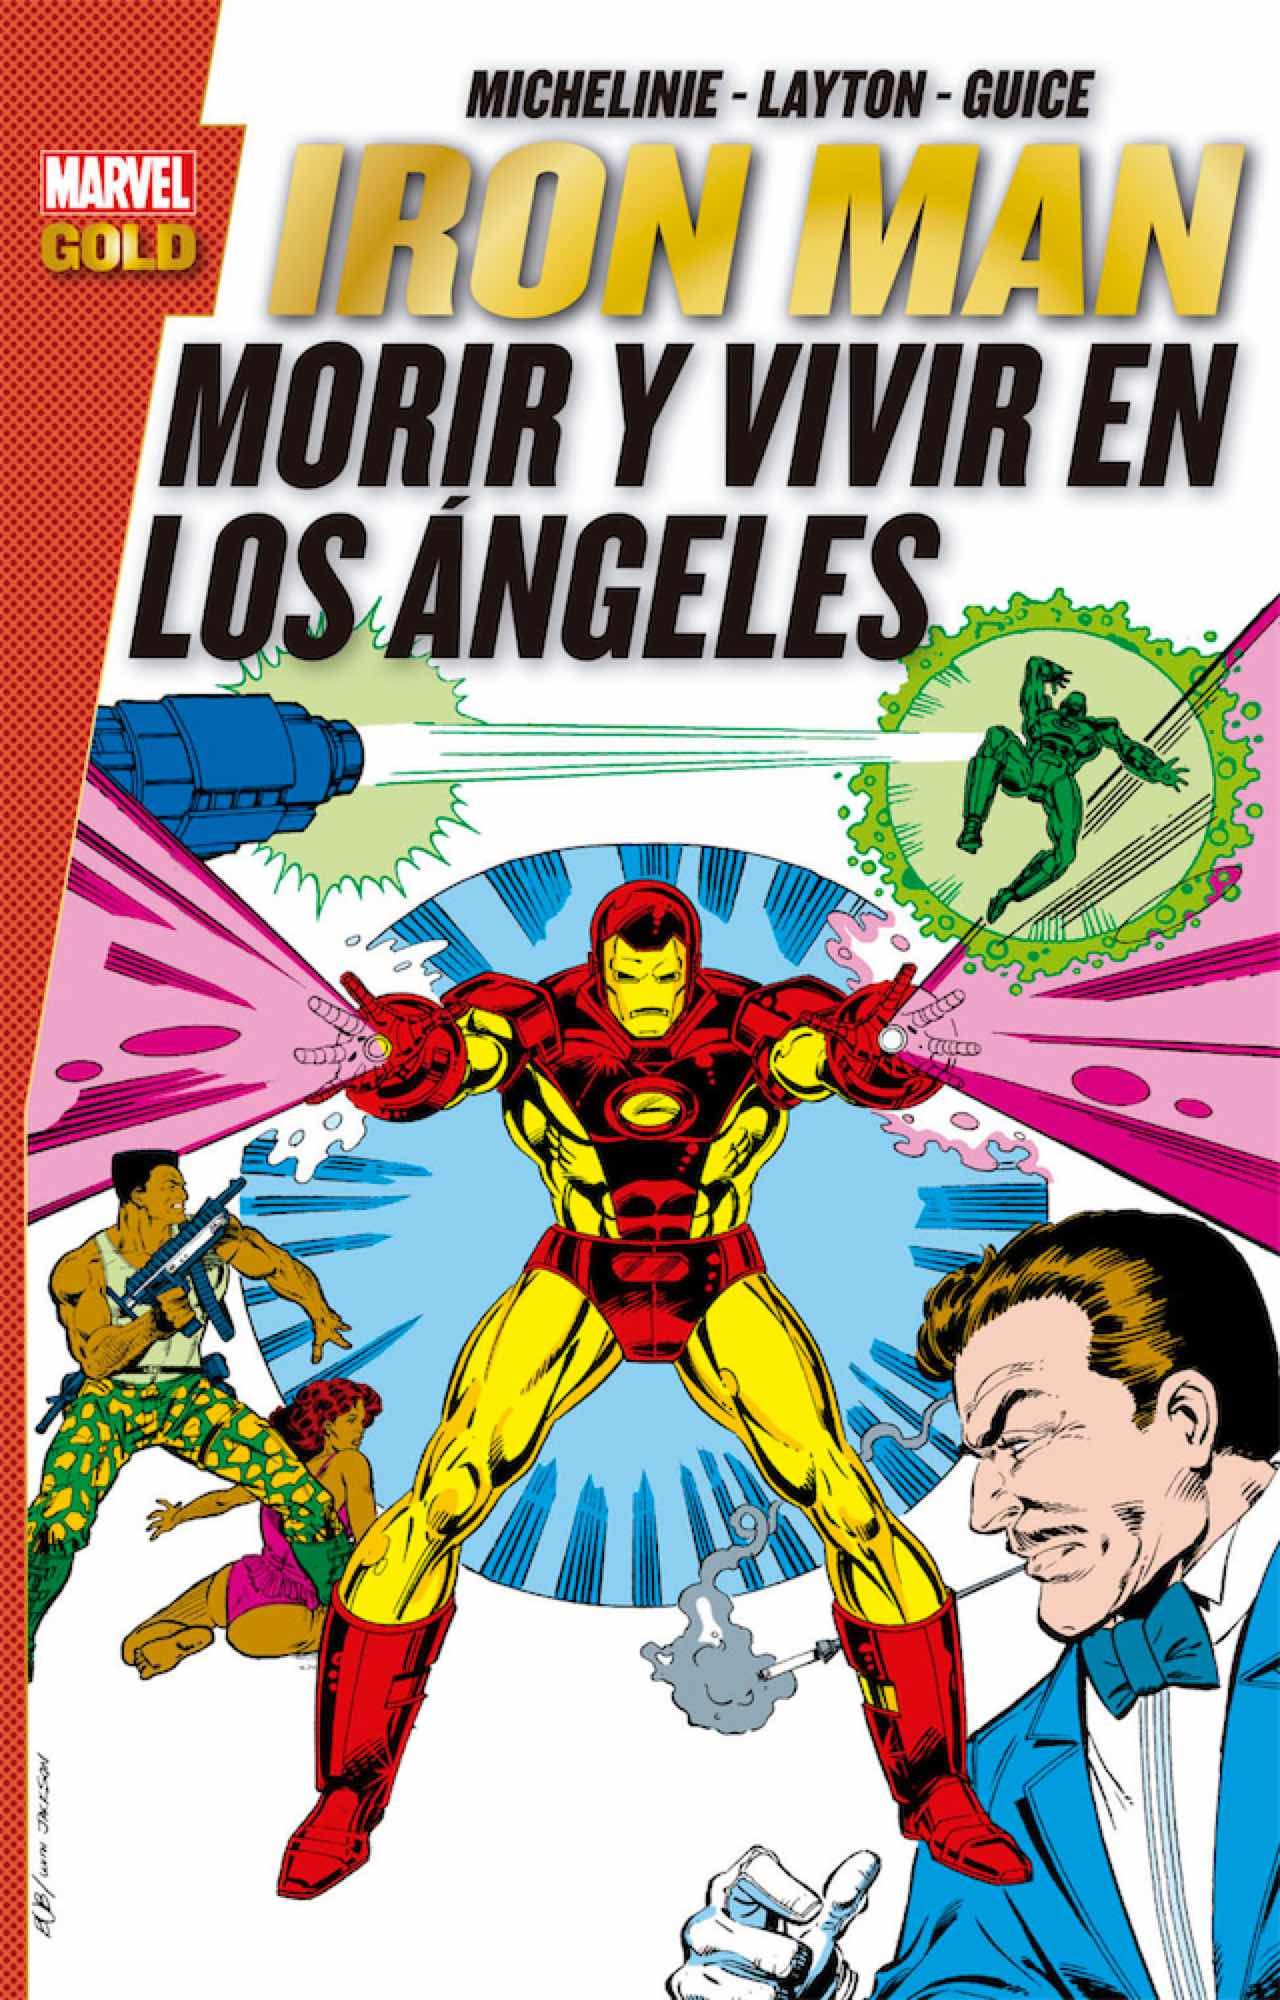 IRON MAN: MORIR Y VIVIR EN LOS ANGELES  (MARVEL GOLD)